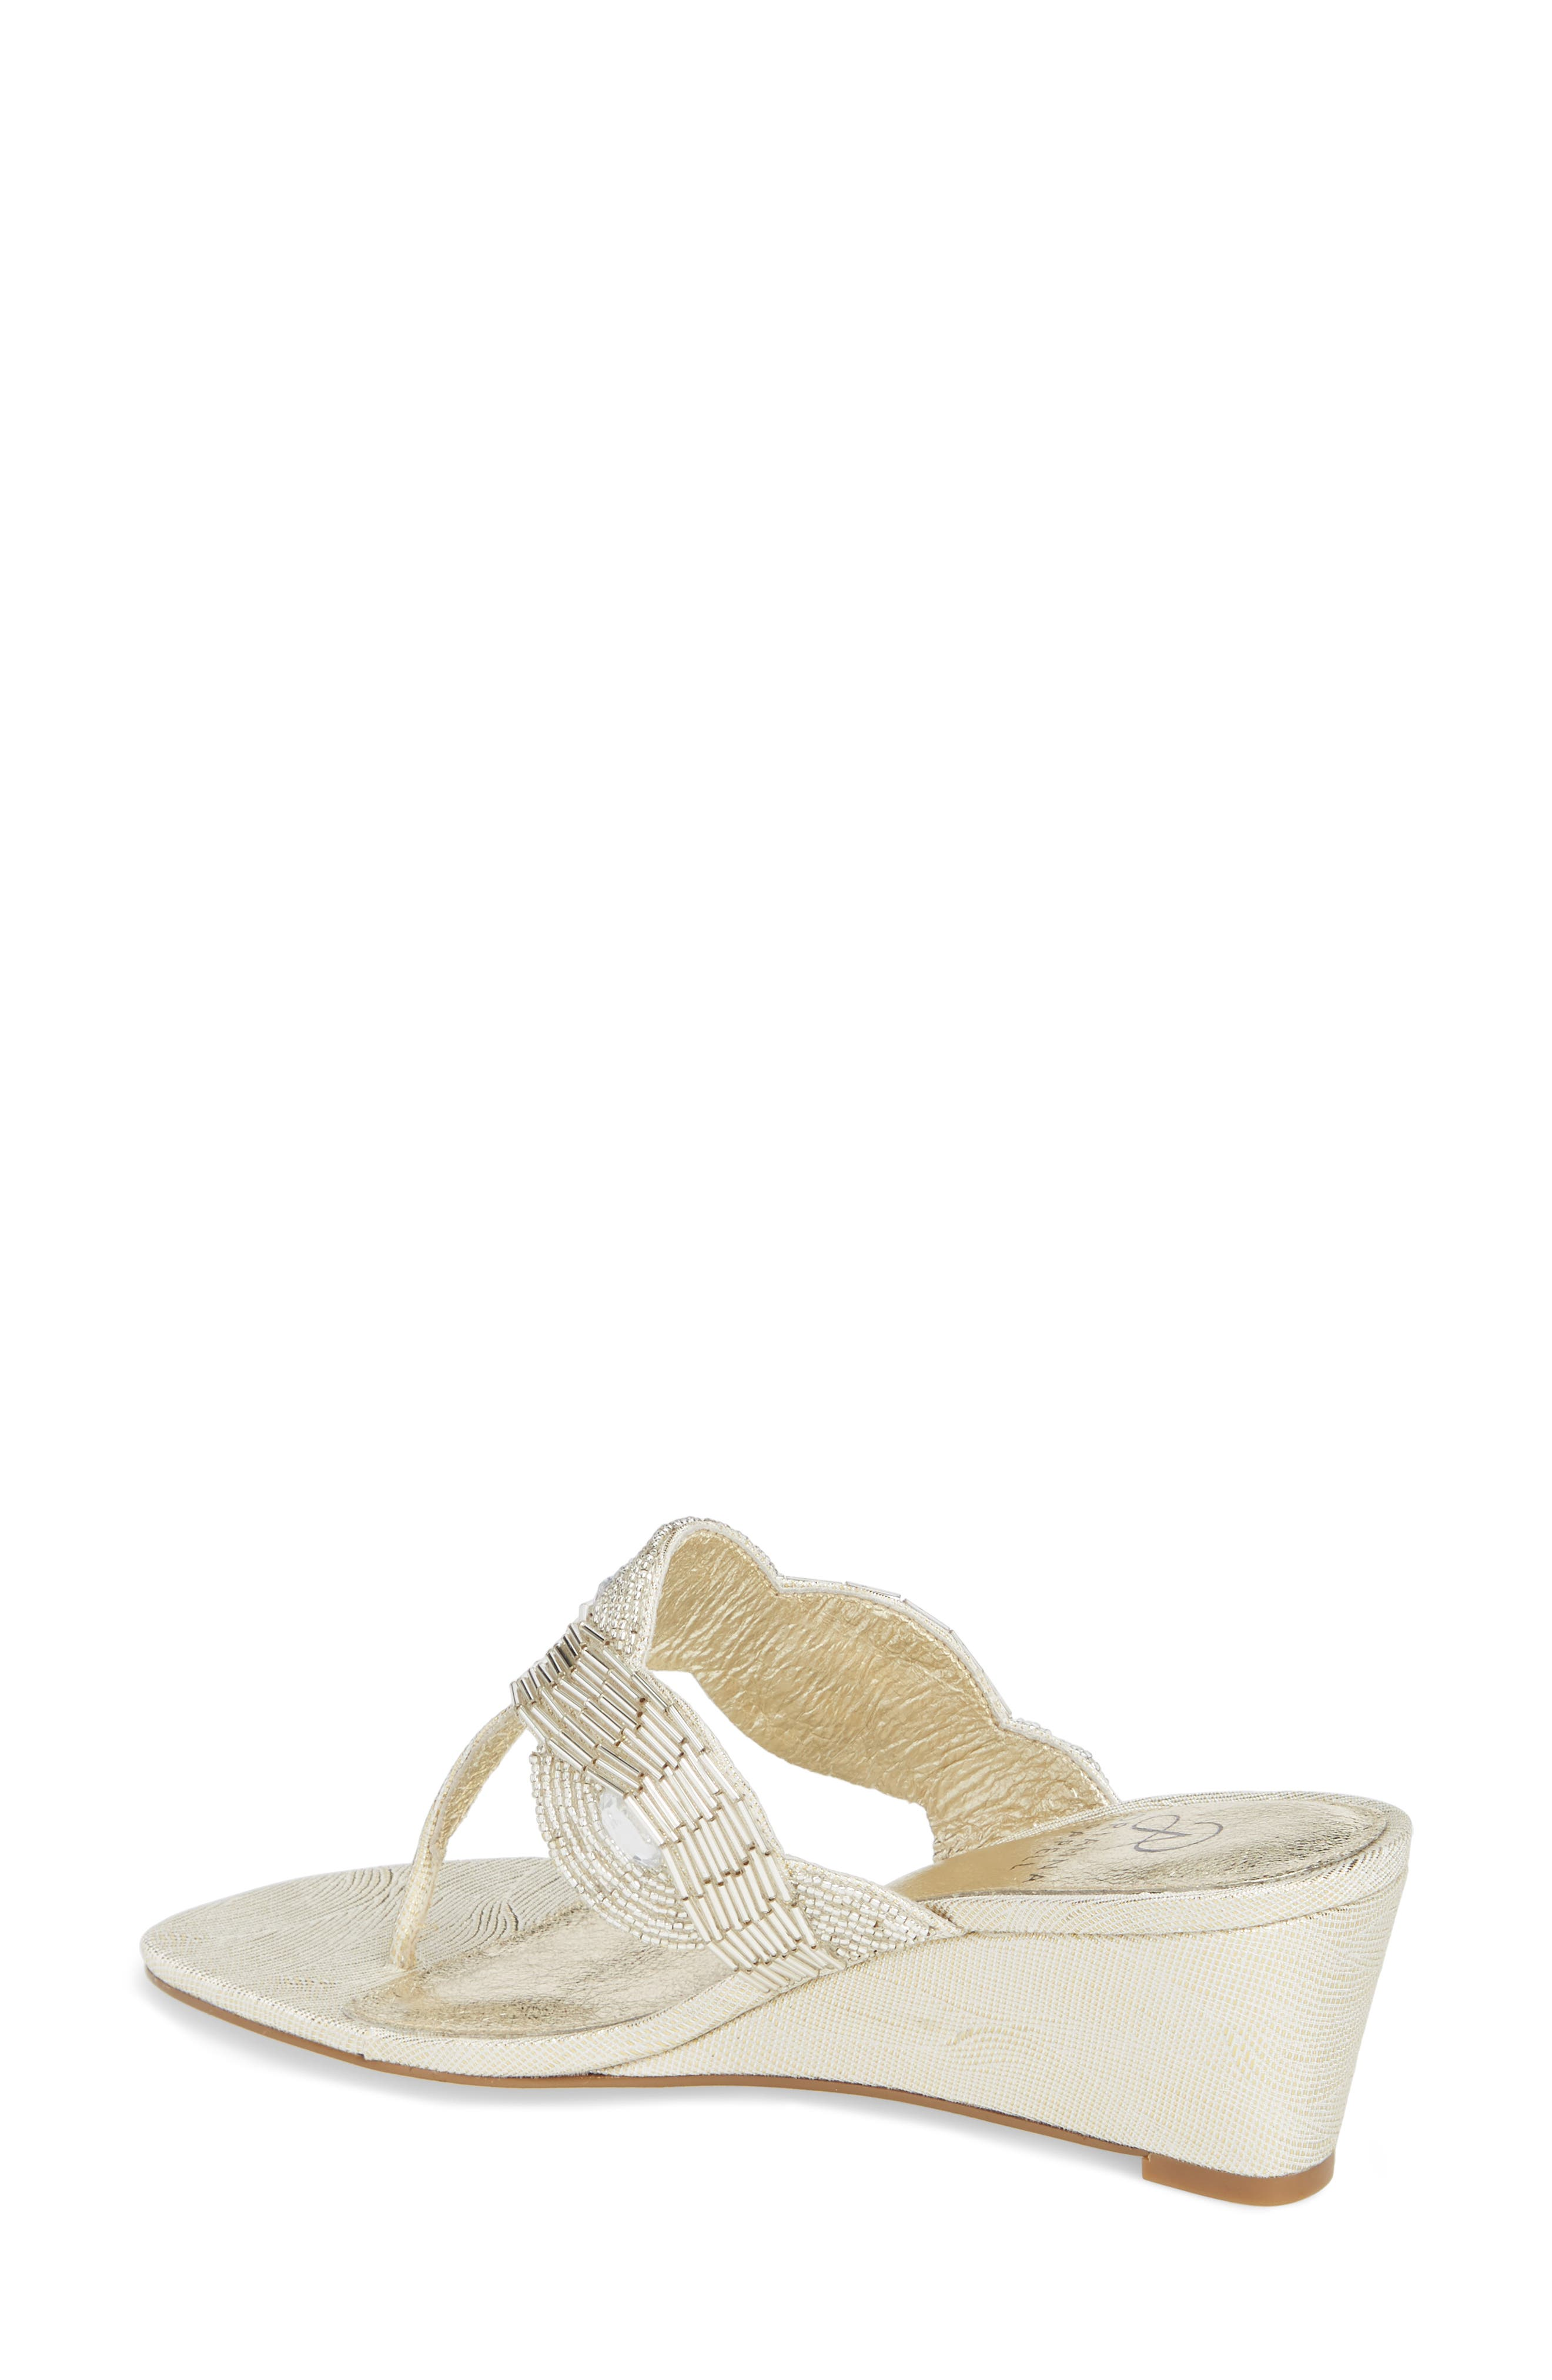 Coco Beaded Wedge Sandal,                             Alternate thumbnail 2, color,                             Pearl Fabric